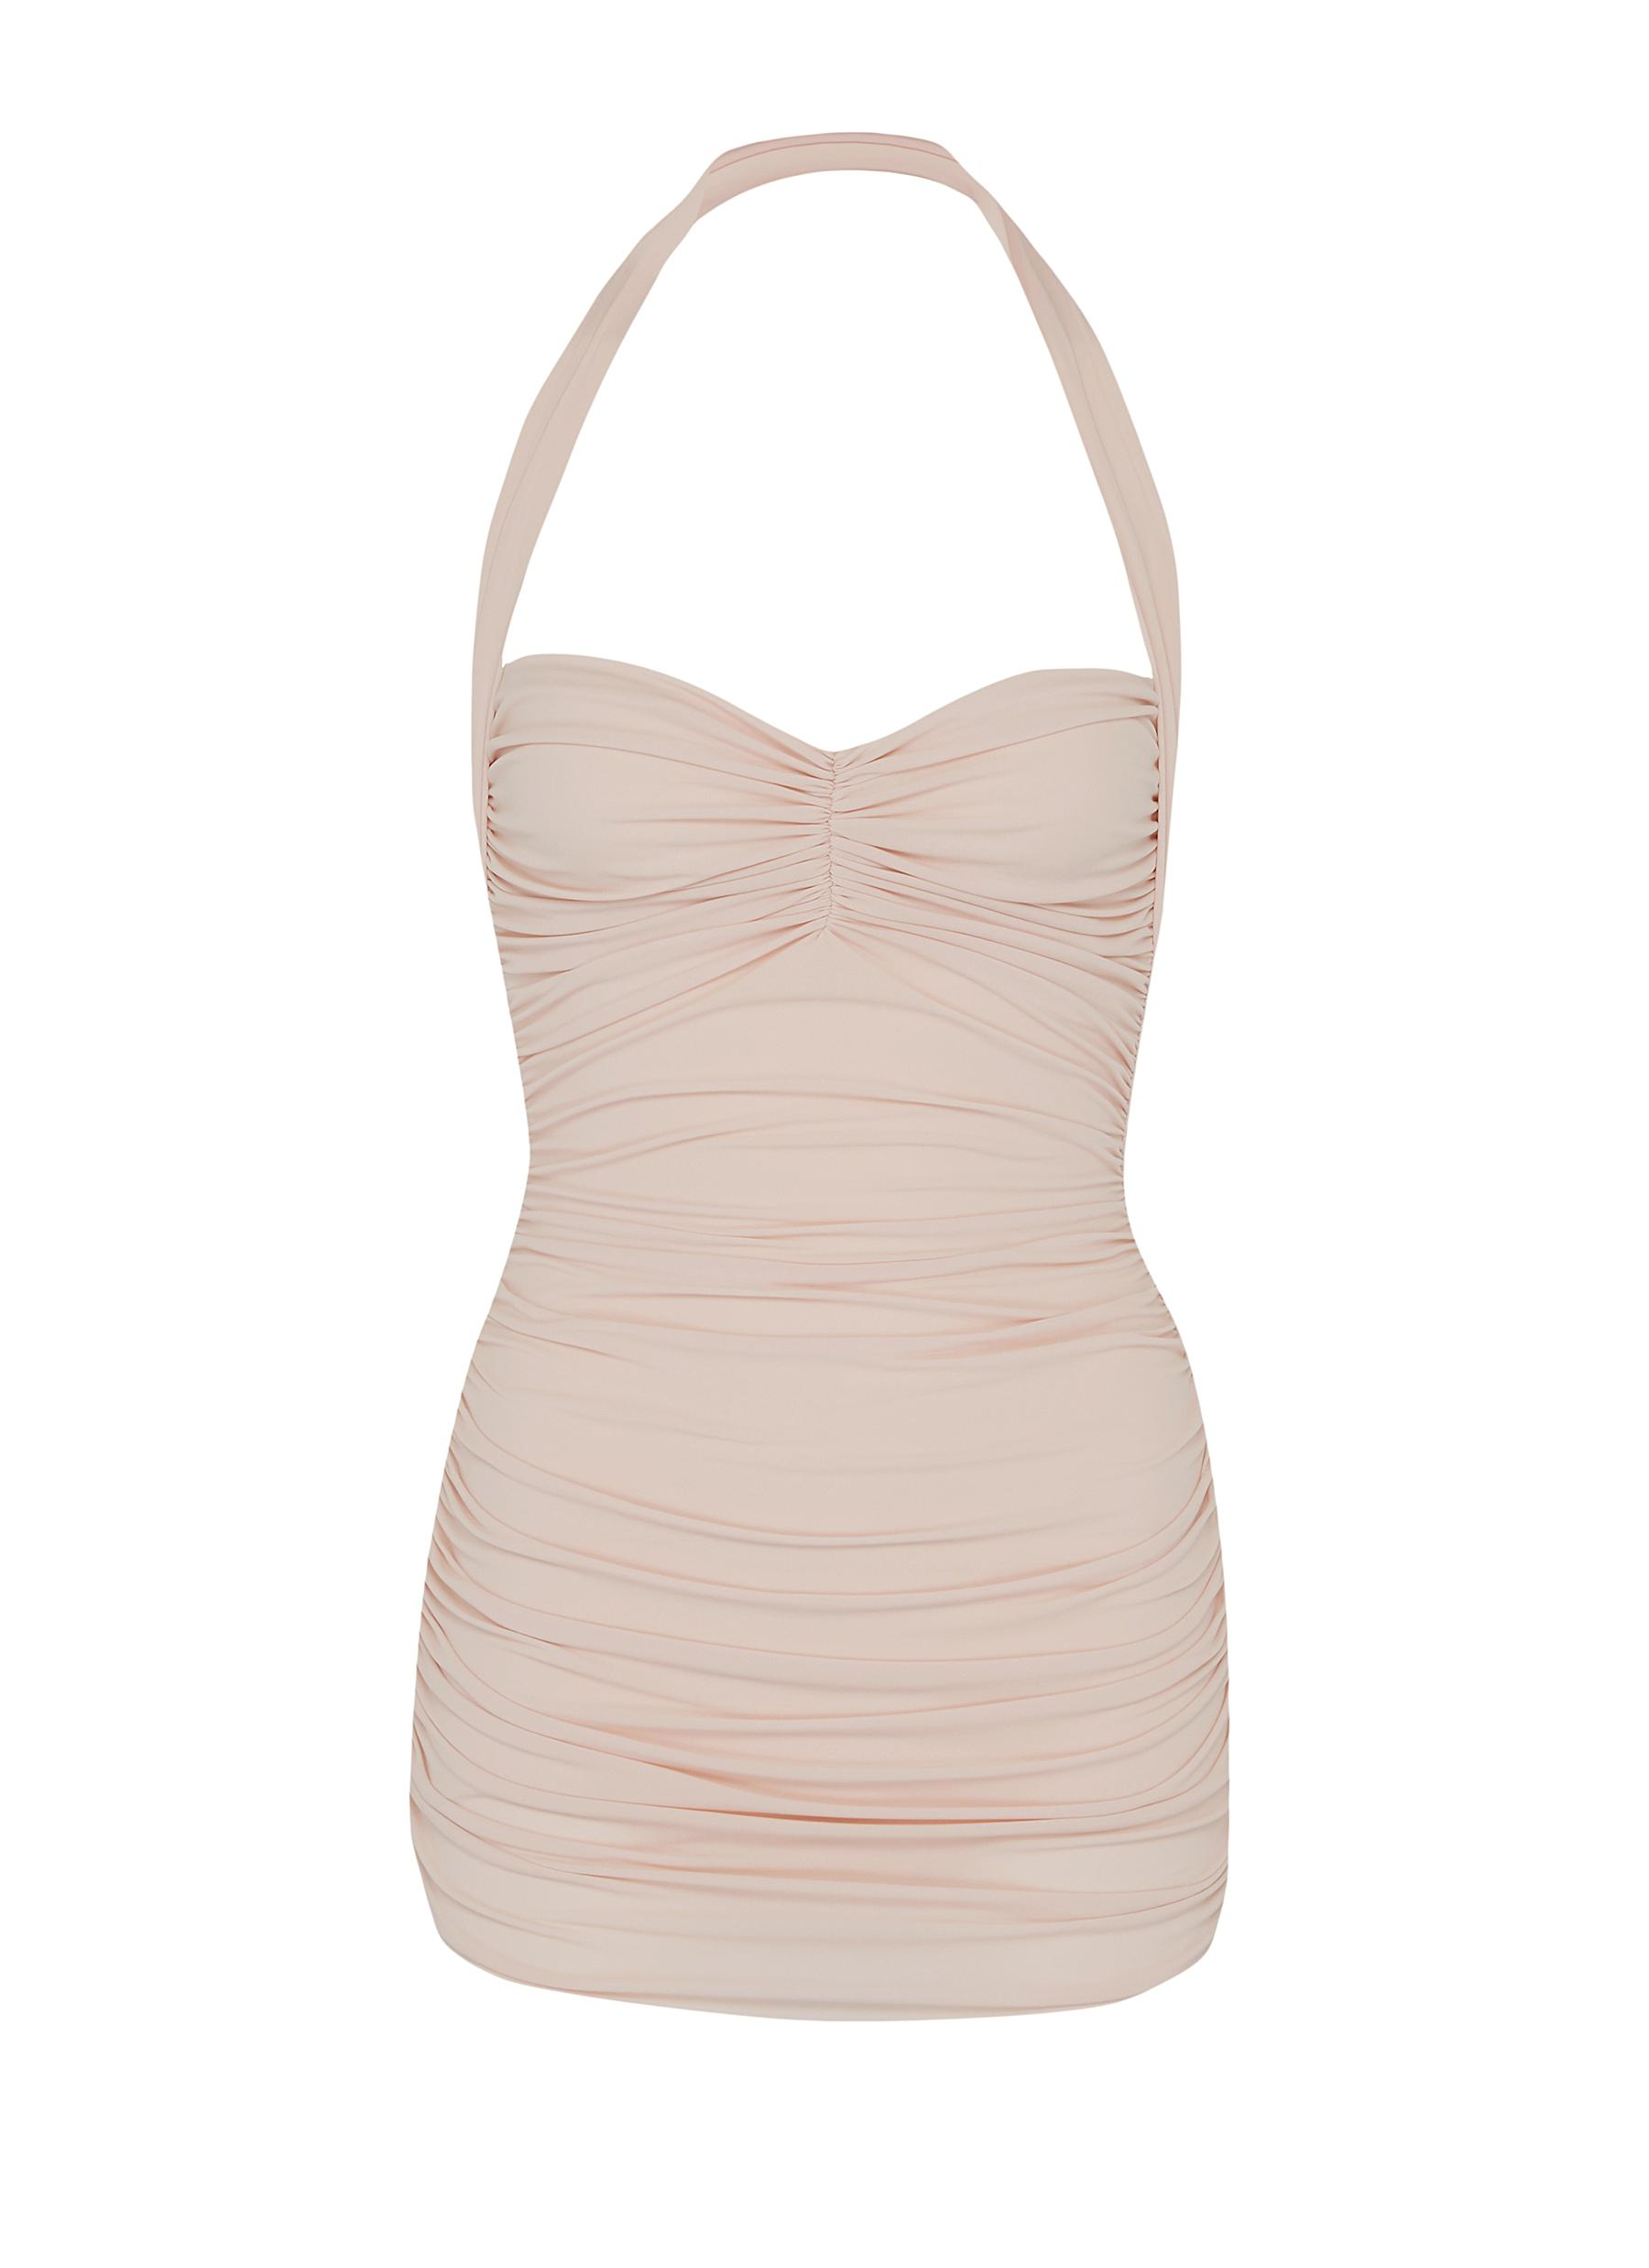 Bill Mio ruched halterneck one-piece swimsuit by Norma Kamali